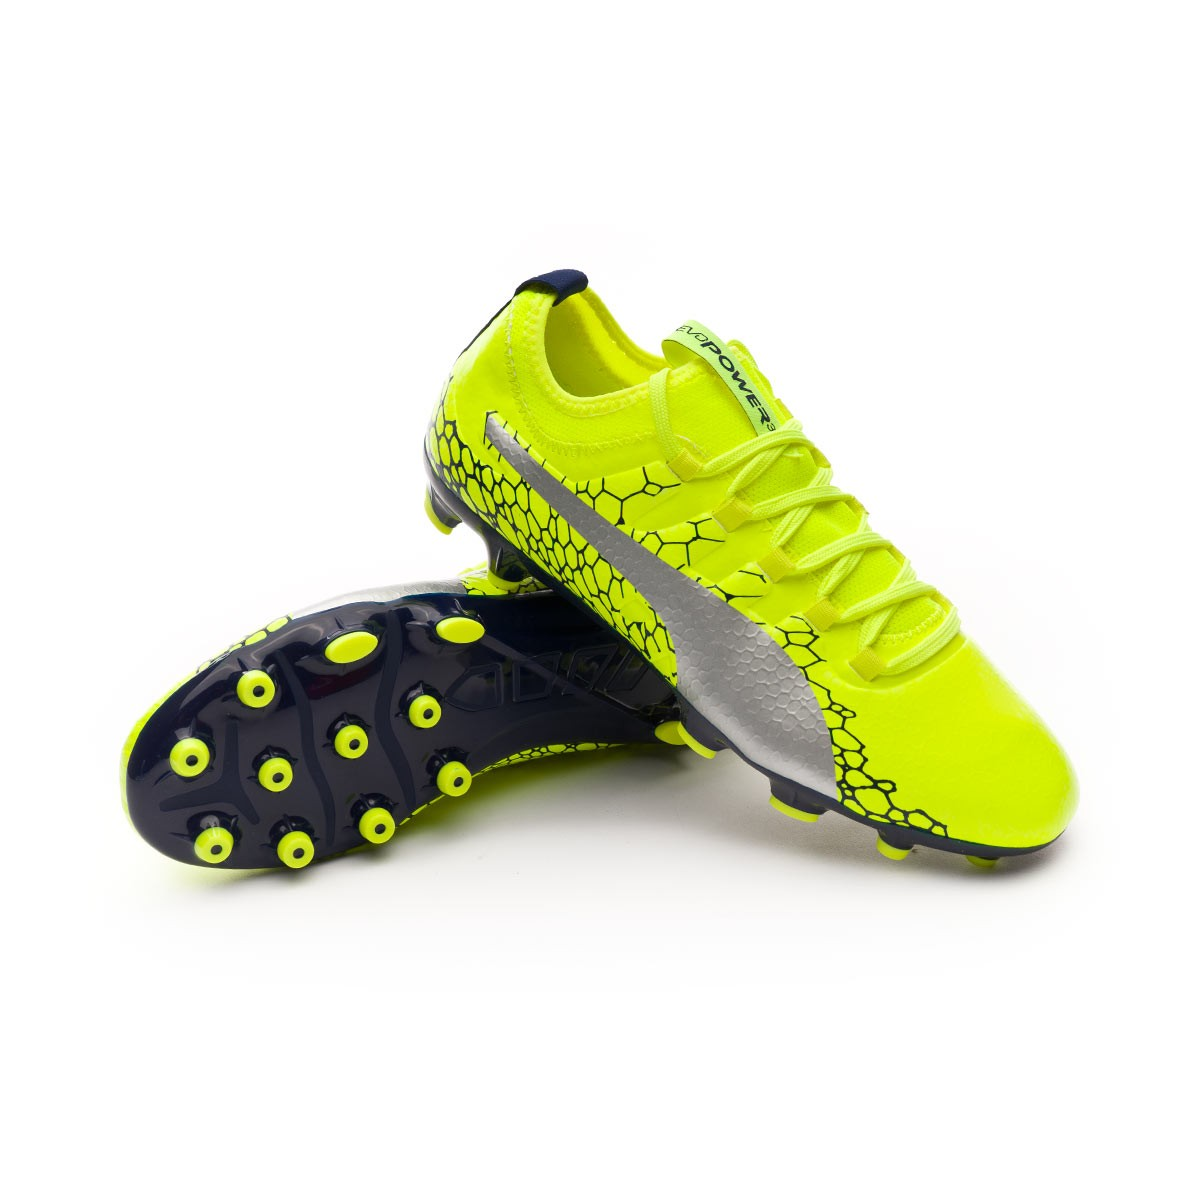 2f3d13cba478 Football Boots Puma Kids evoPOWER Vigor 3 Graphic AG Safety yellow ...